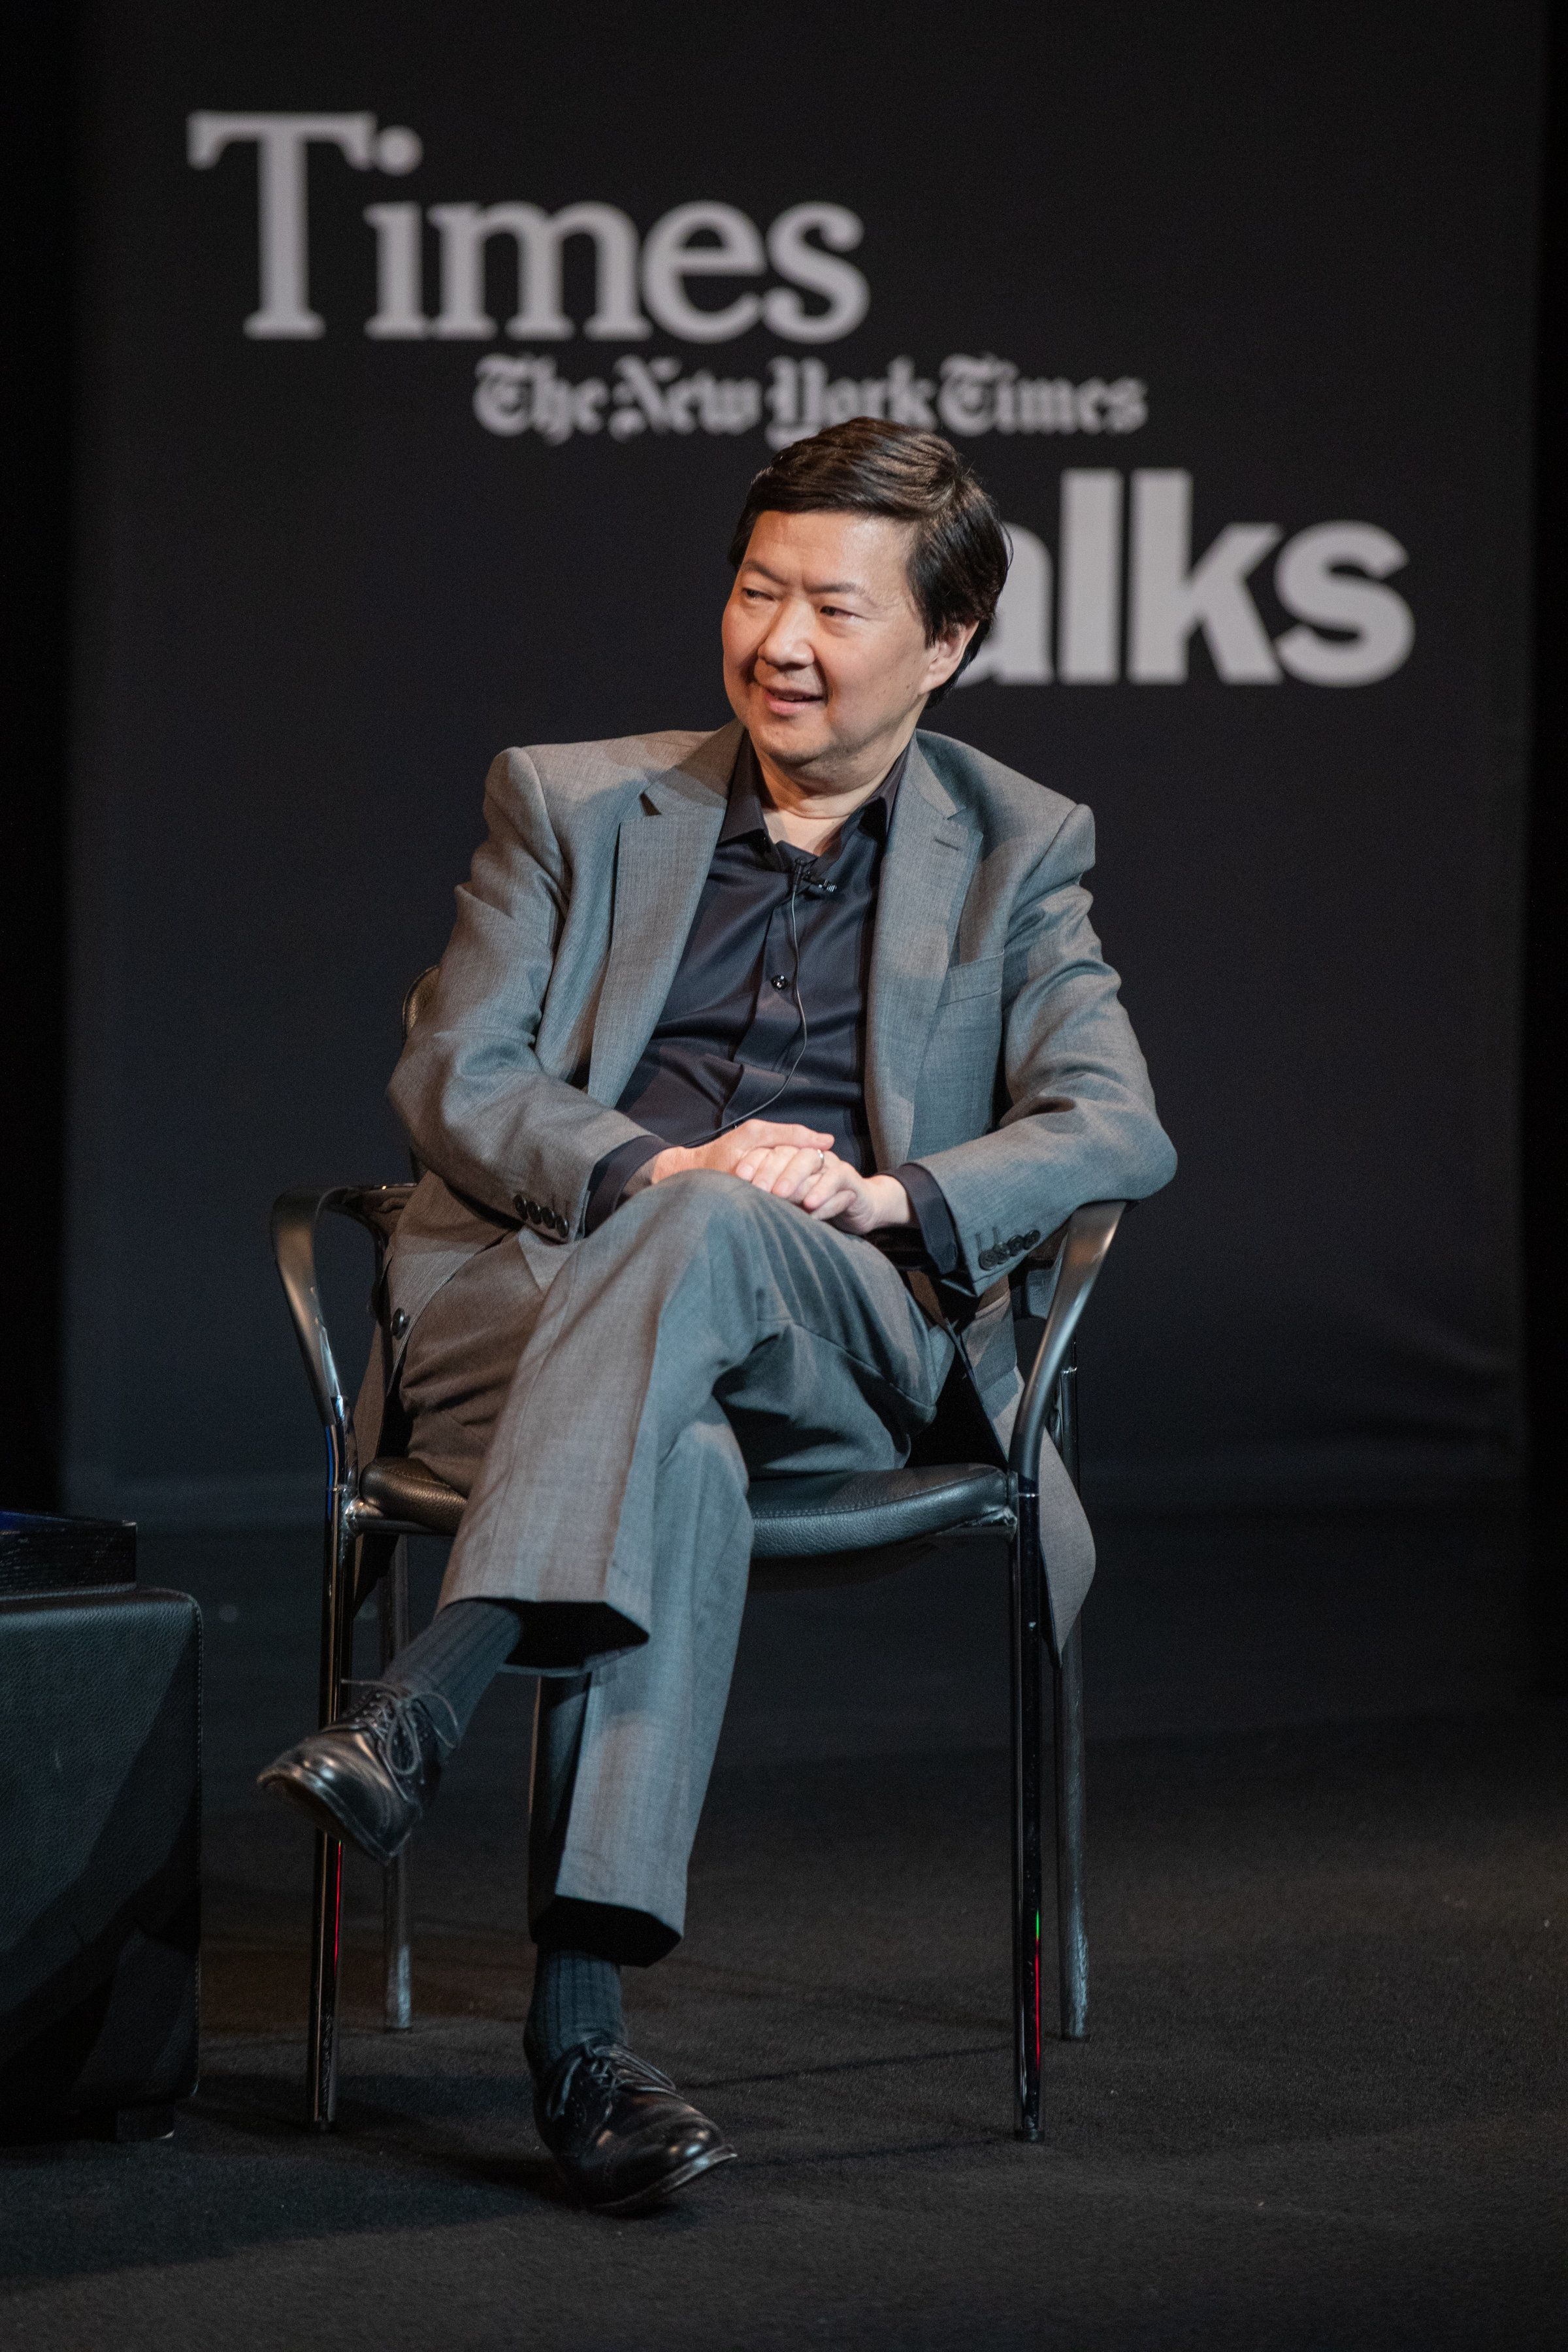 Ken Jeong tells an uplifting story of Asian-Americans in Hollywood helping each other out.